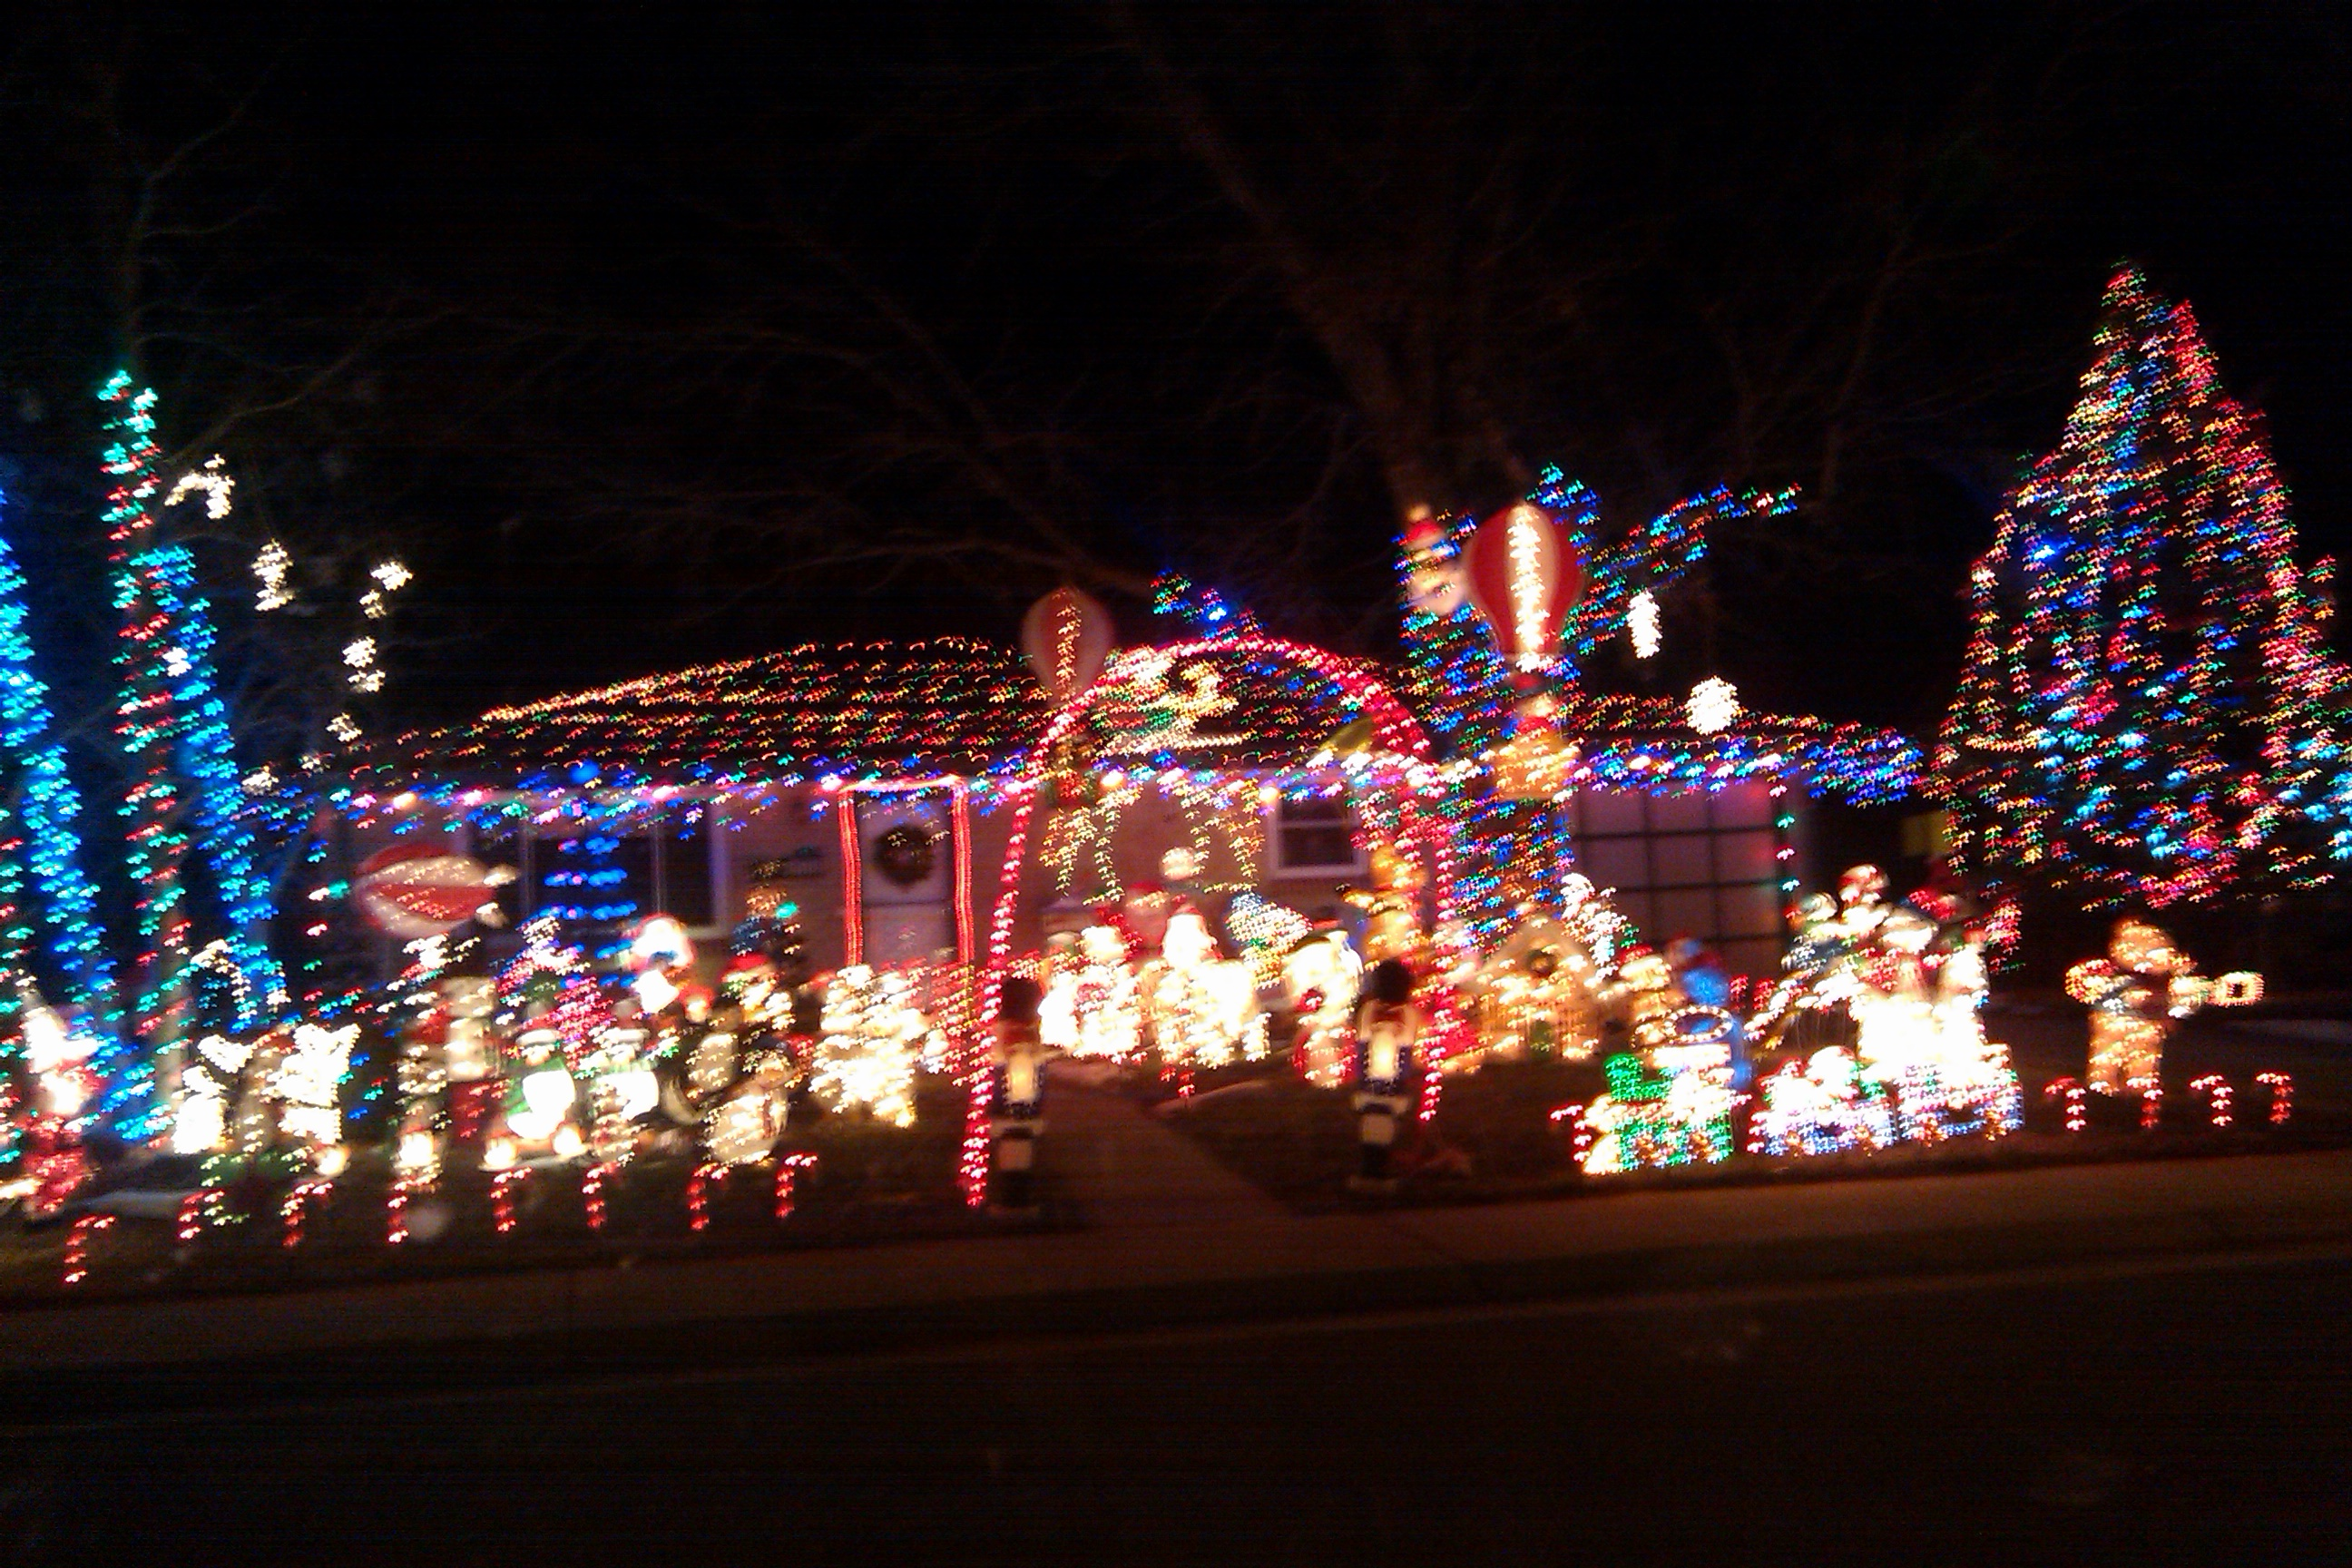 Why do we decorate with christmas lights - It Was Seriously Impressive How Much They Managed To Fit In Their Yard When I See Houses Decorated Like This I Have 2 Thoughts Where Do They Store All